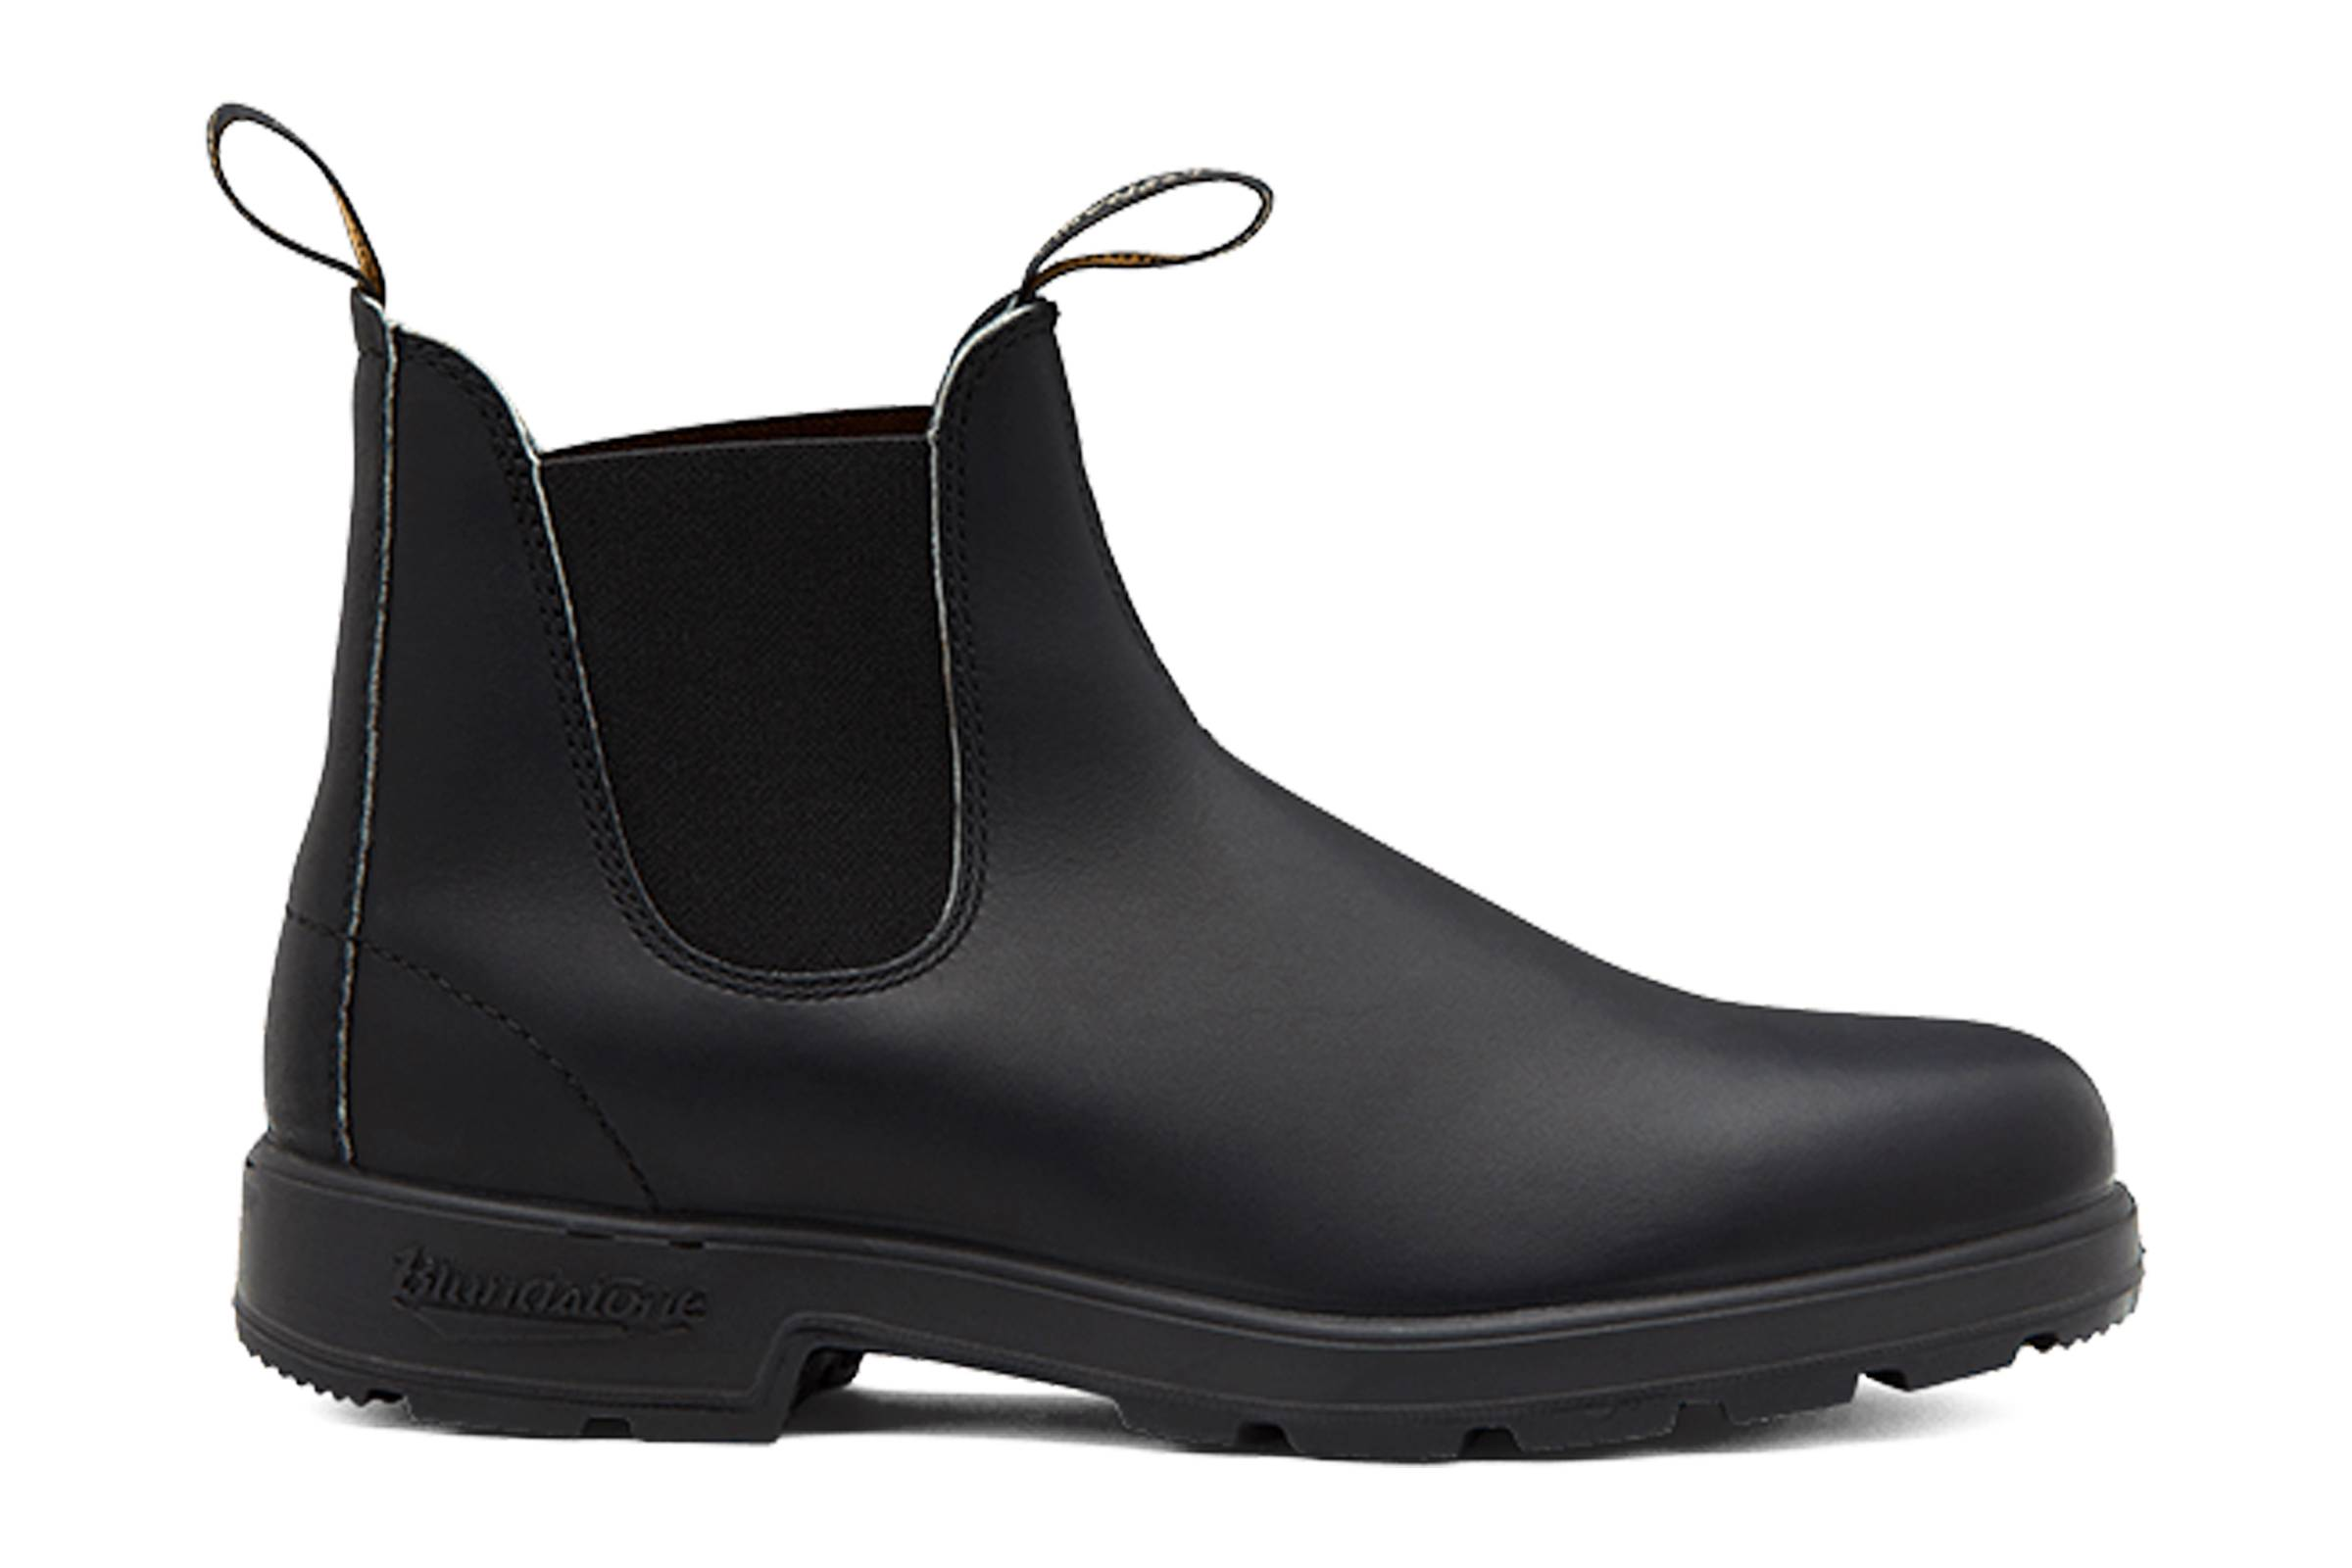 Blundstone 500 Leather Chelsea Boot